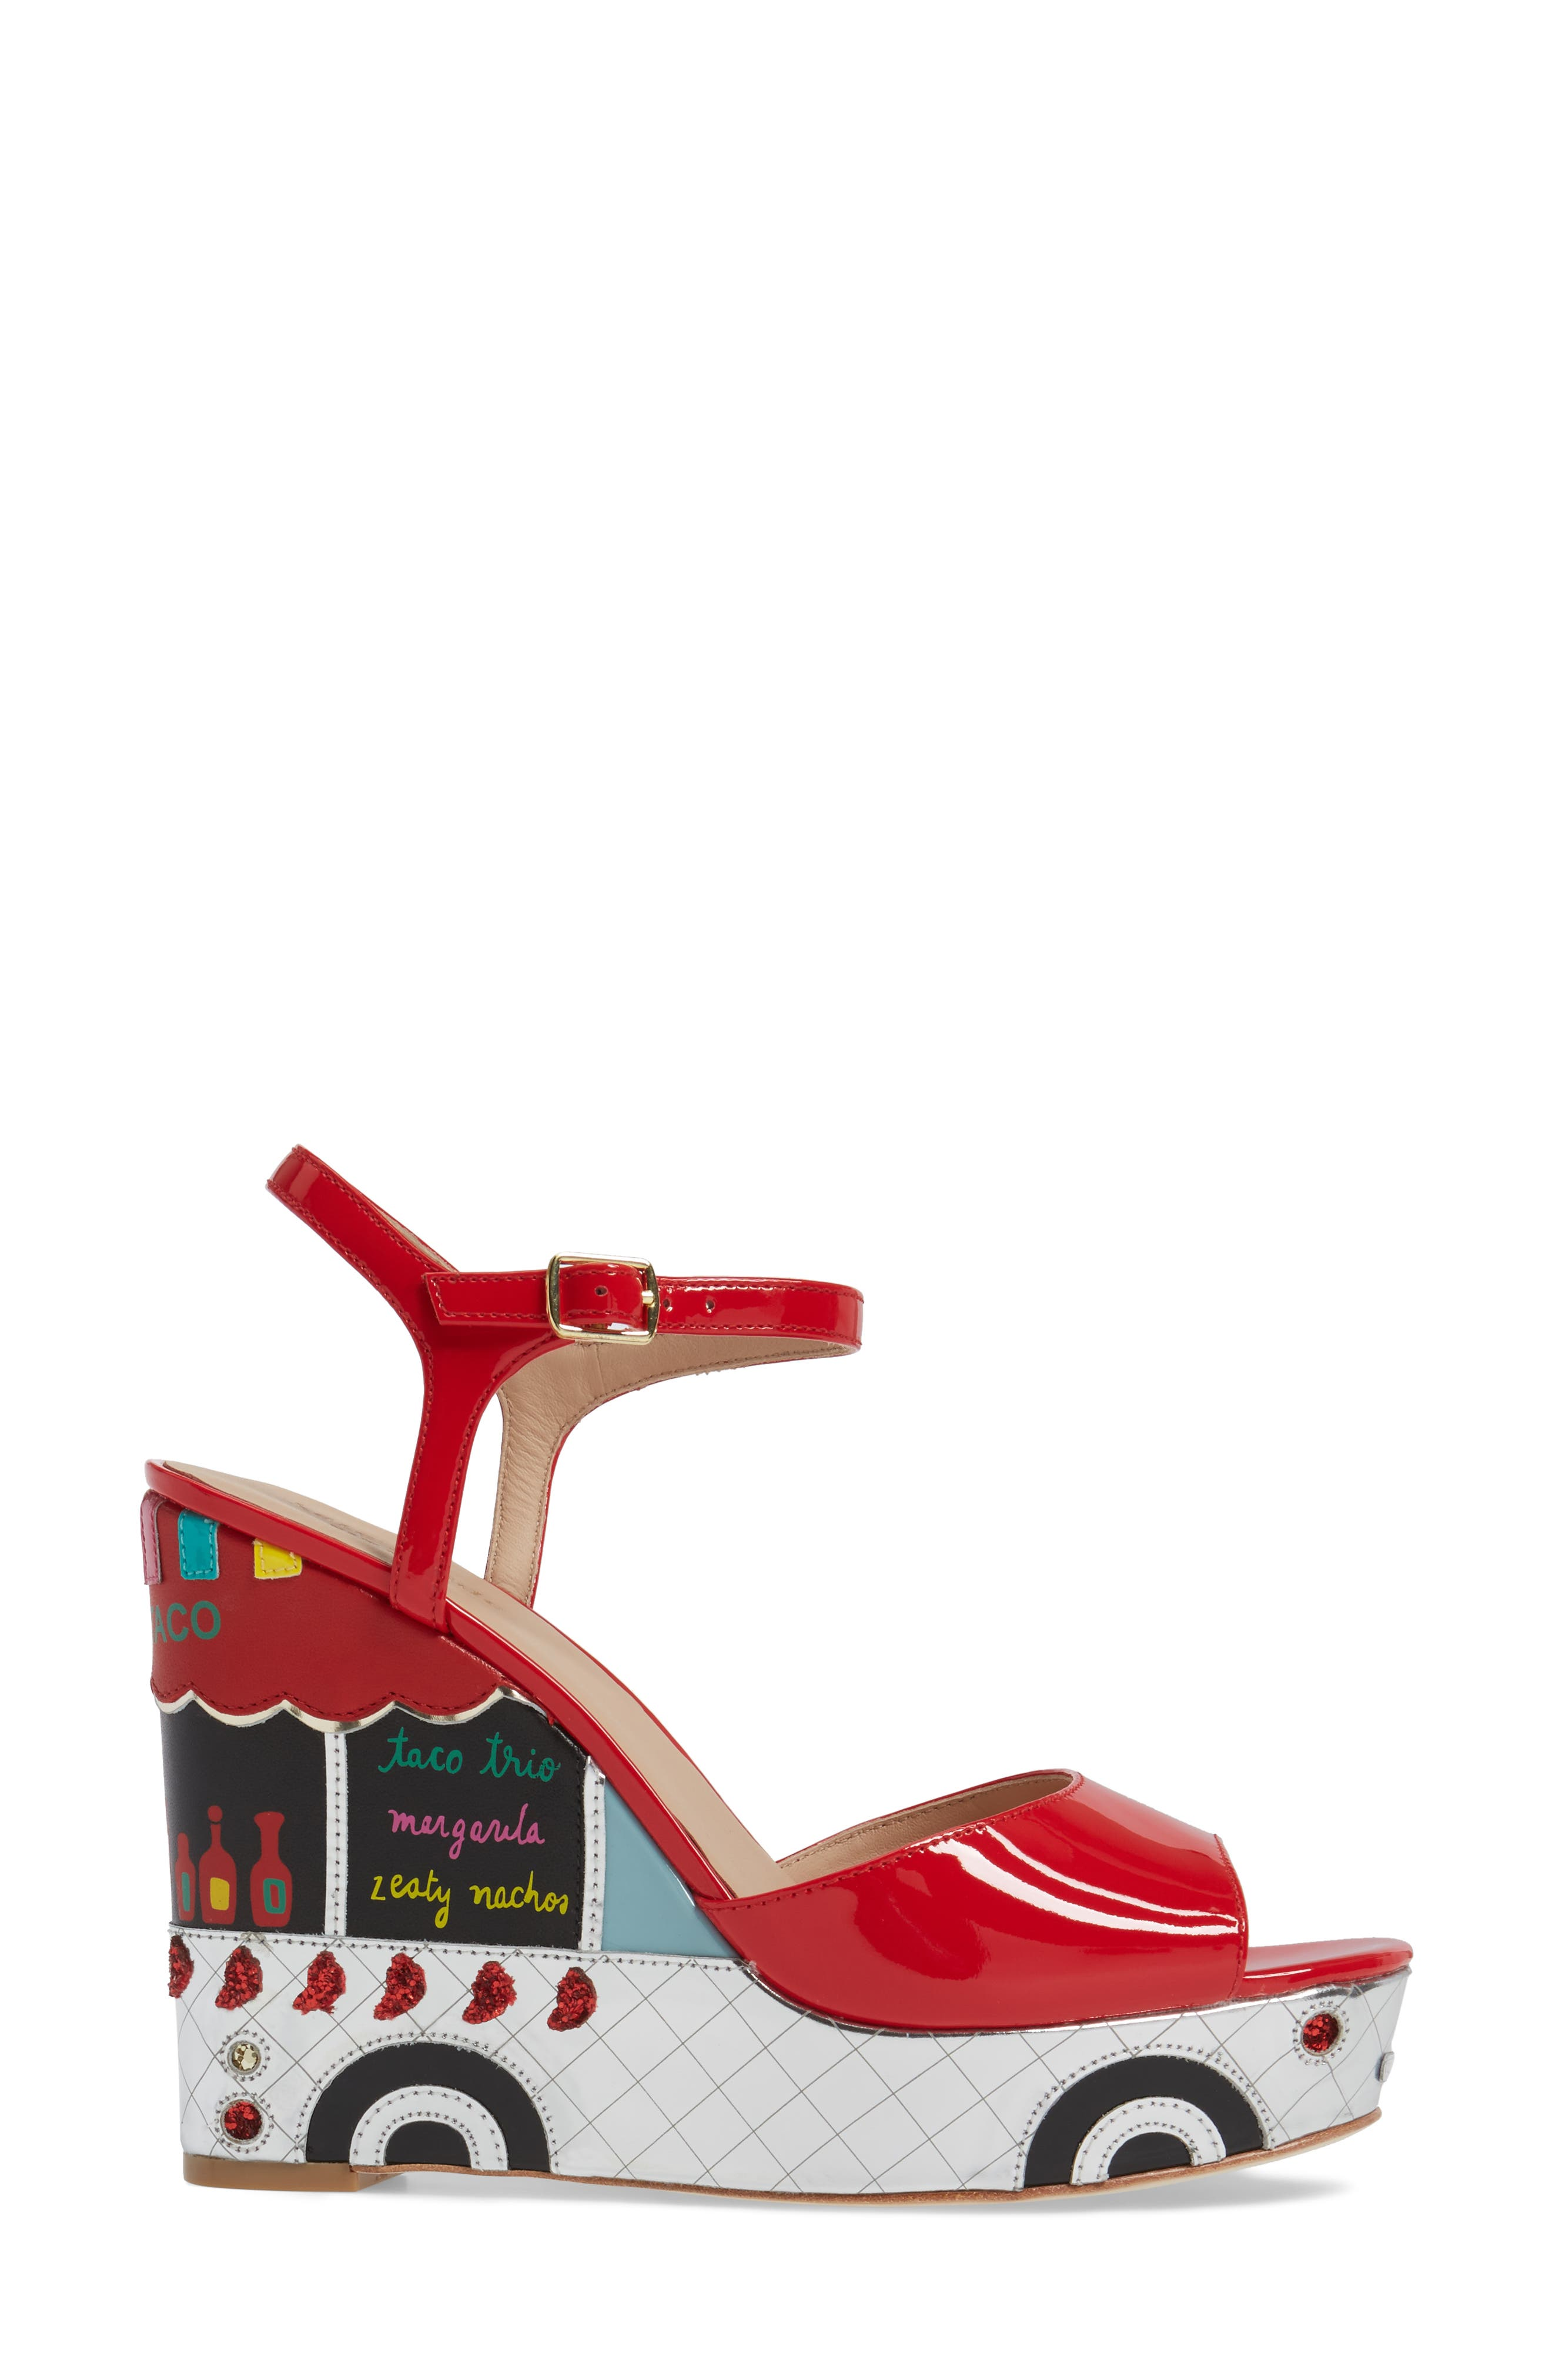 dora wedge sandal,                             Alternate thumbnail 3, color,                             Maraschino Red Patent